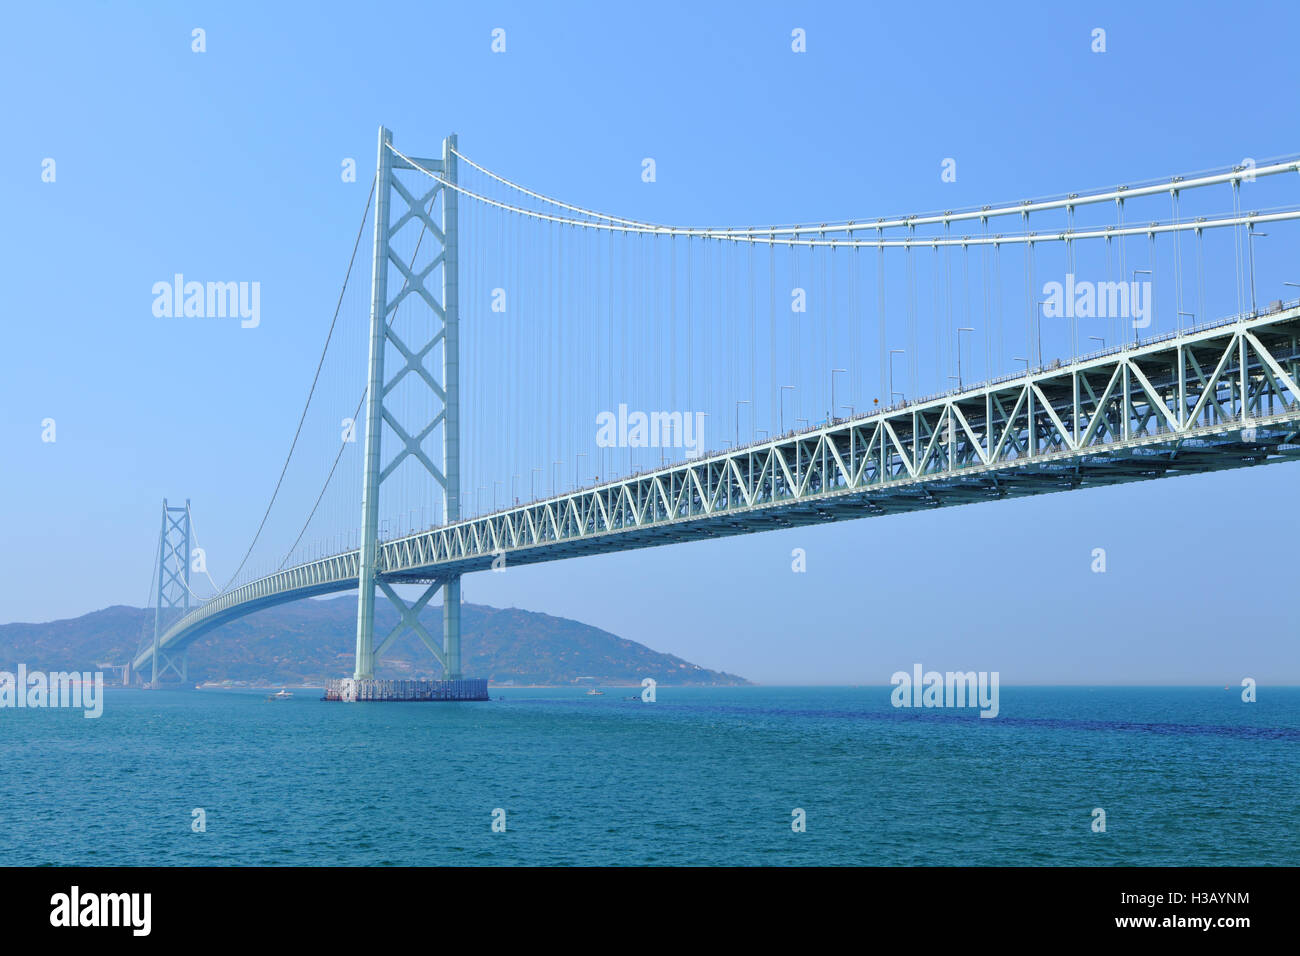 Akashi Kaikyo bridge - Stock Image